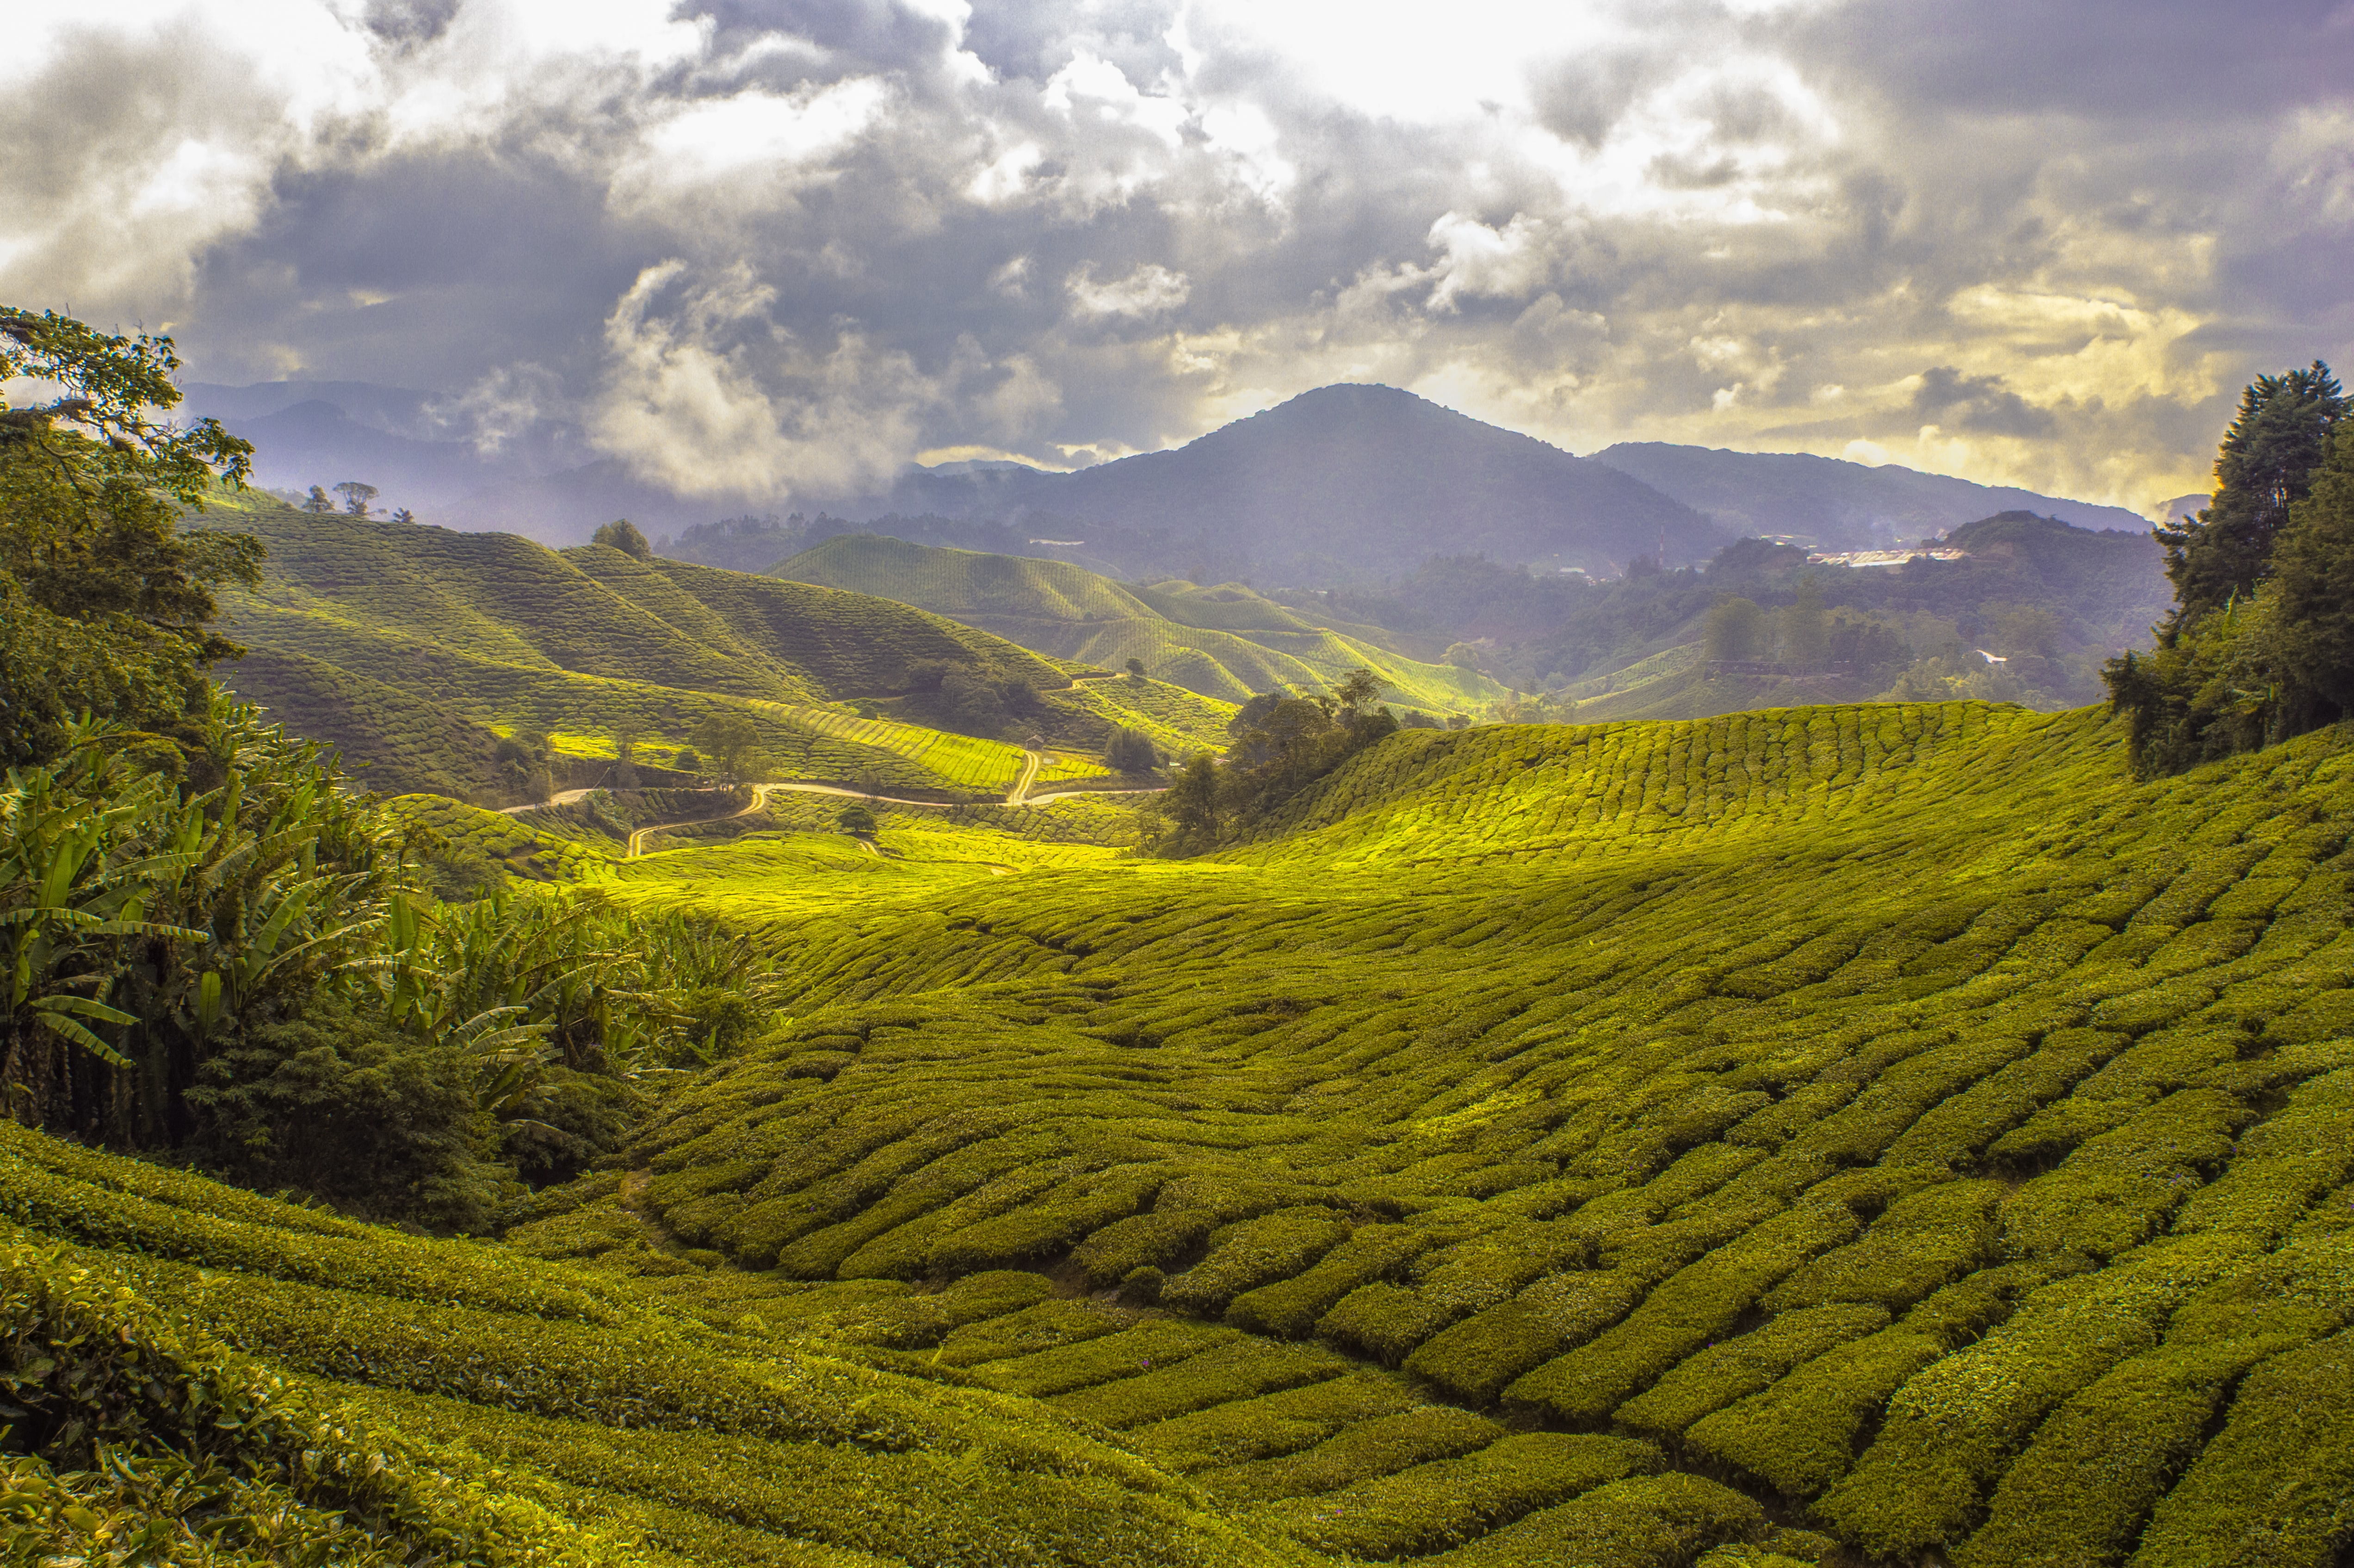 landscape photography of mountain